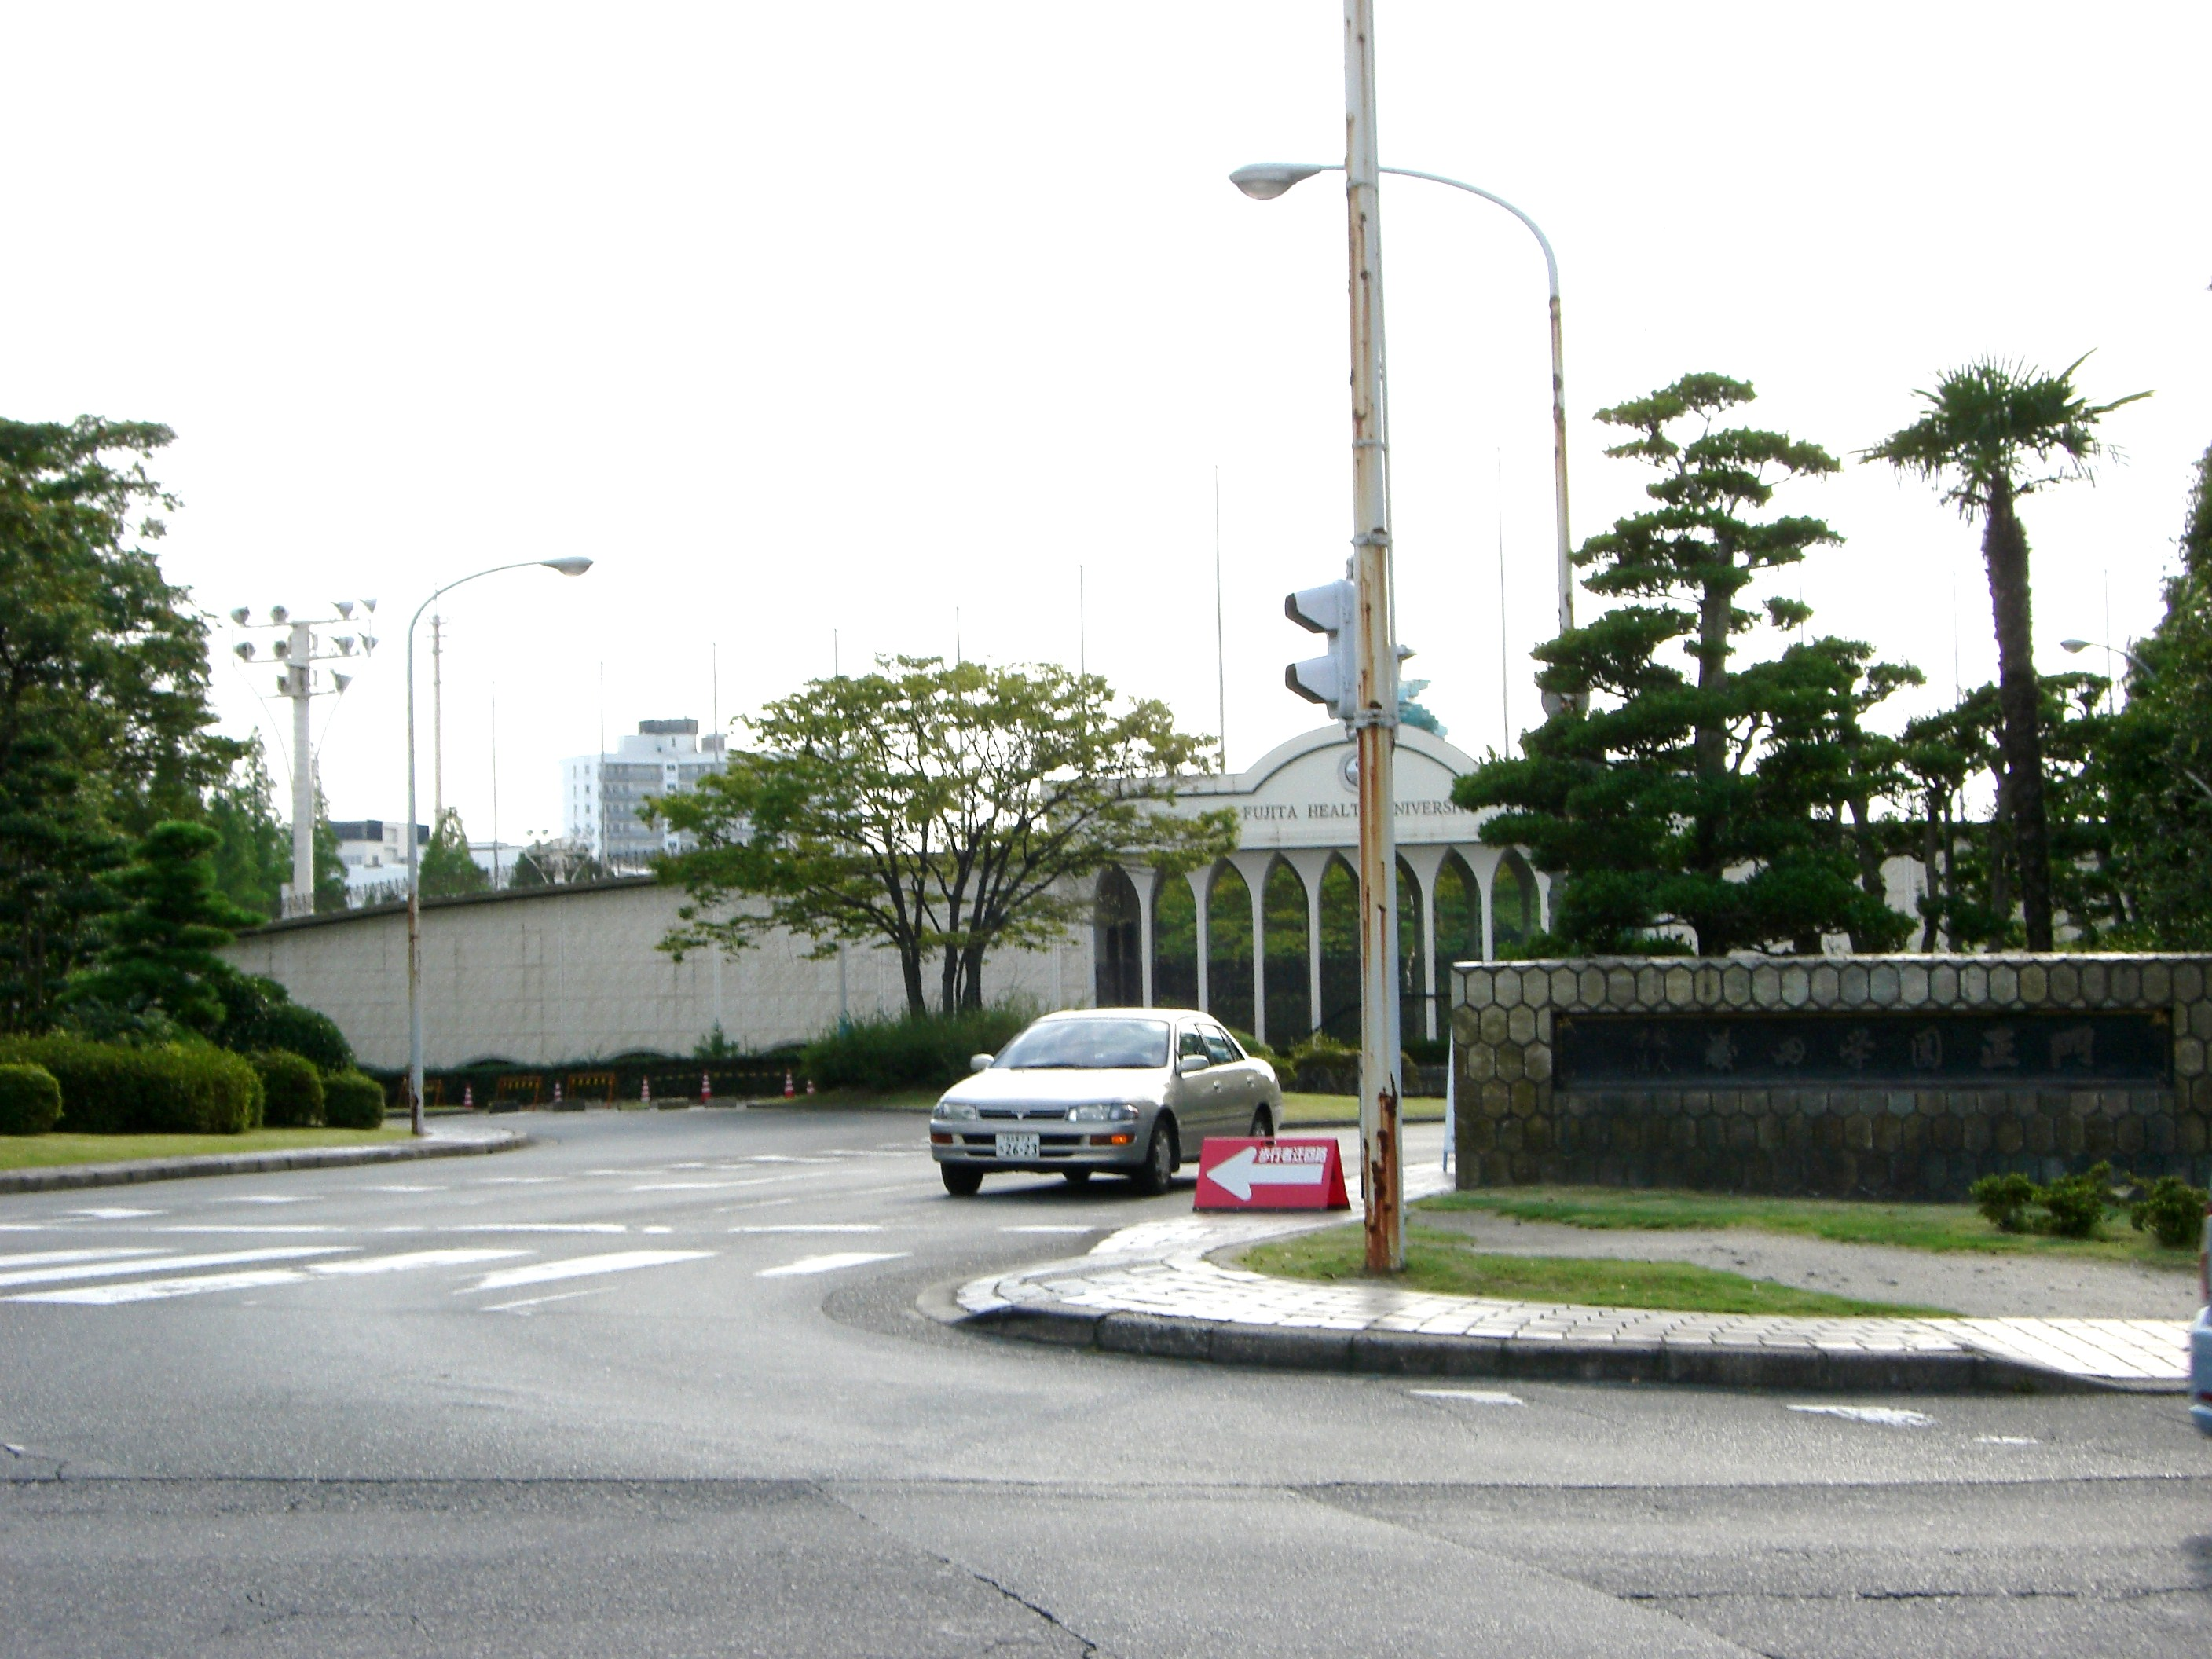 B%2fb3%2ffujita health university main gate